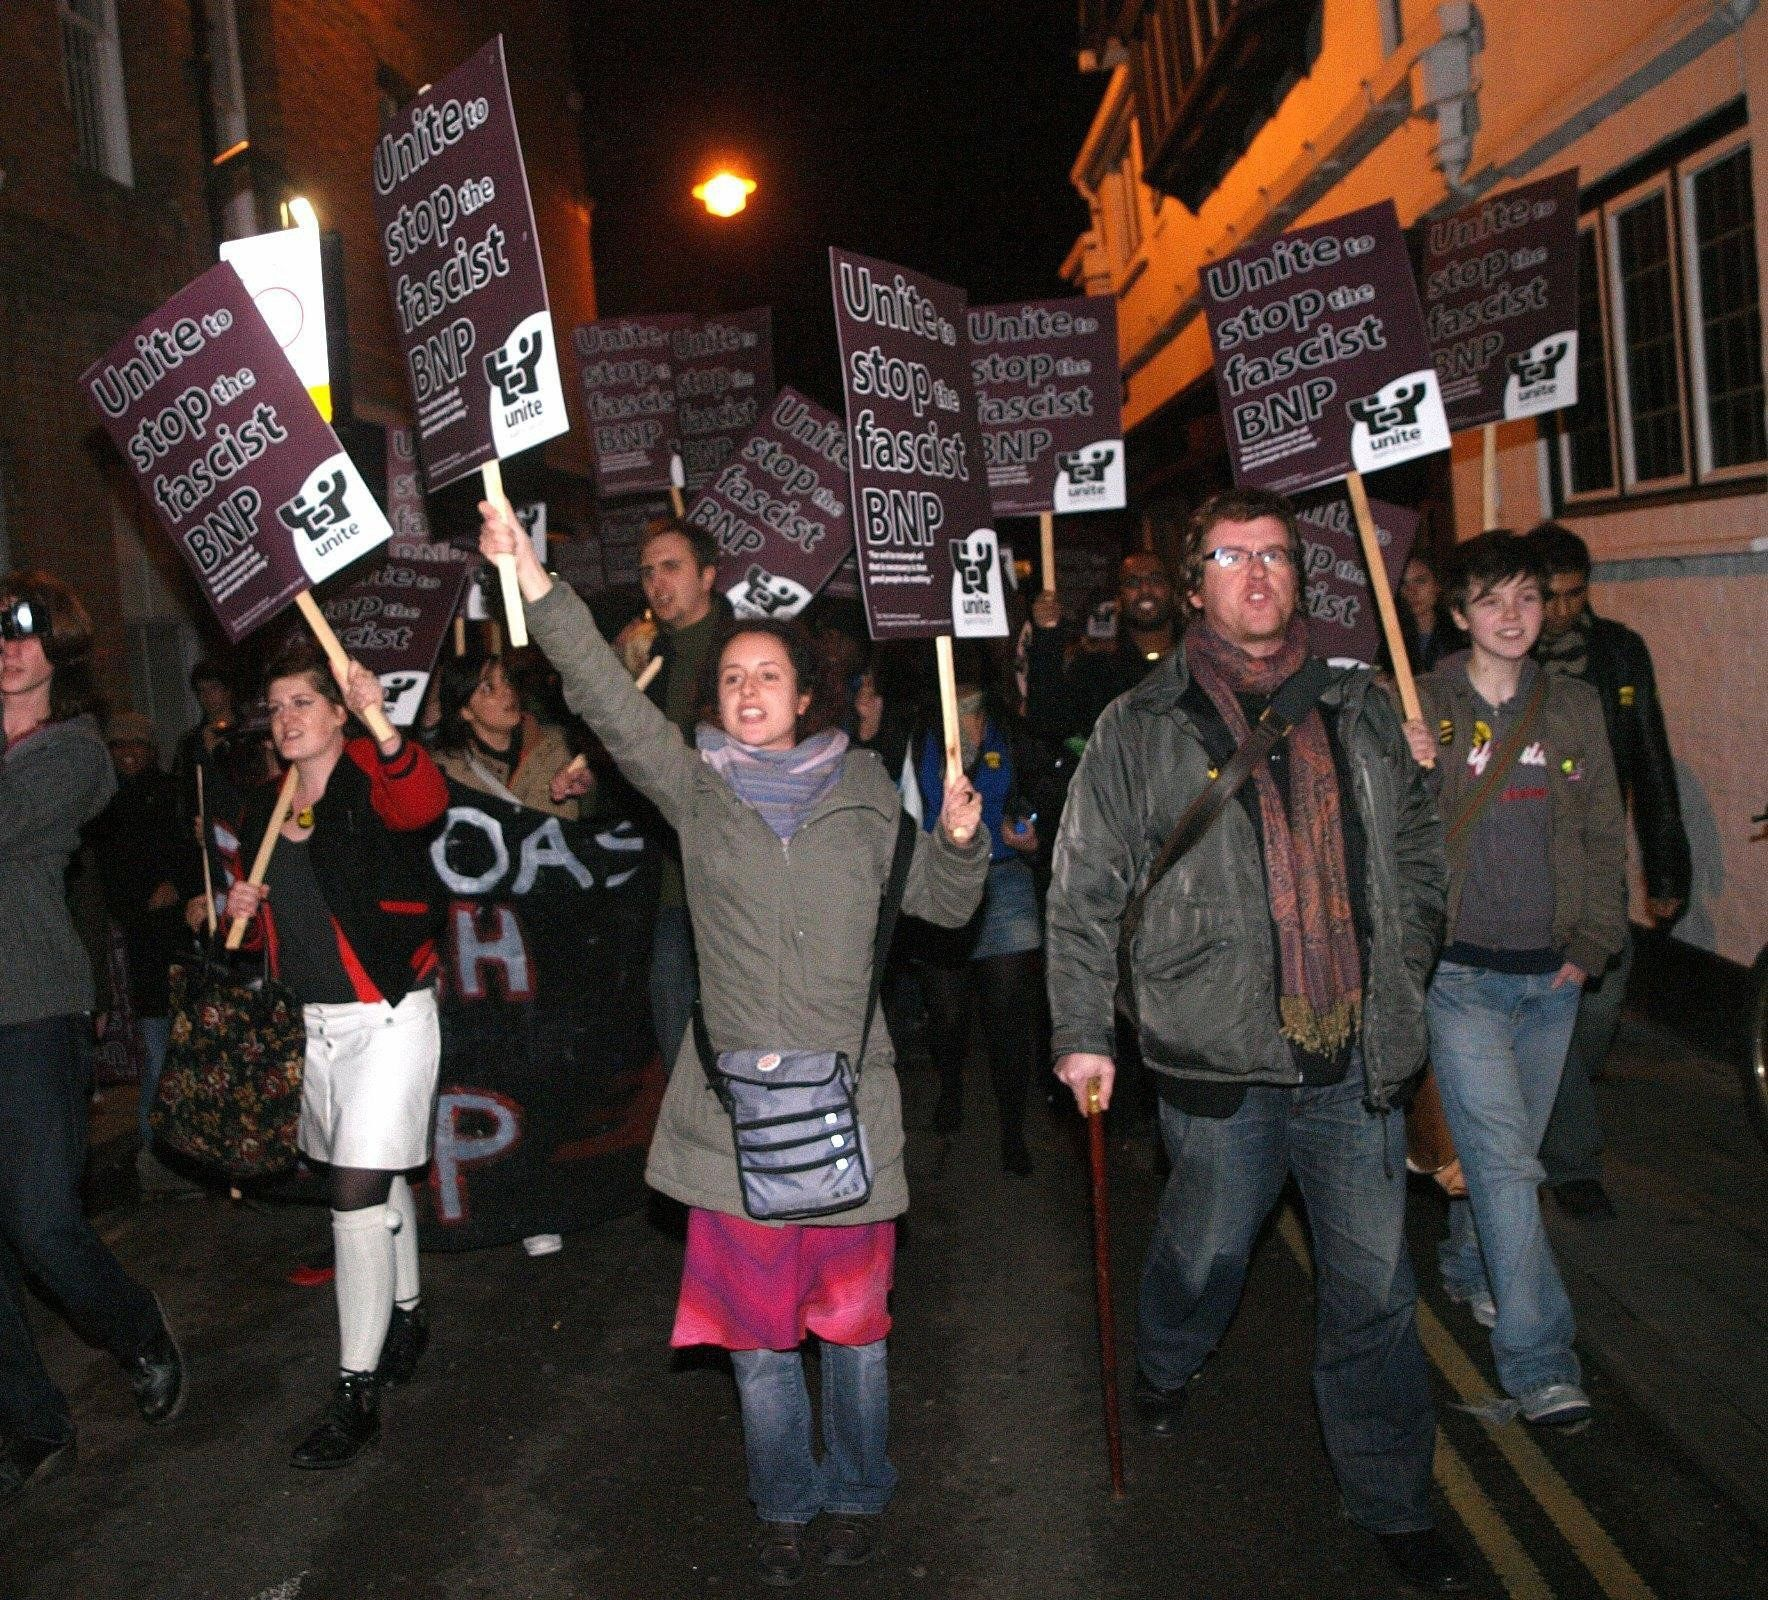 Protesters arrive at the Oxford Union where they opposed the presence of BNP leader Nick Griffin (archive